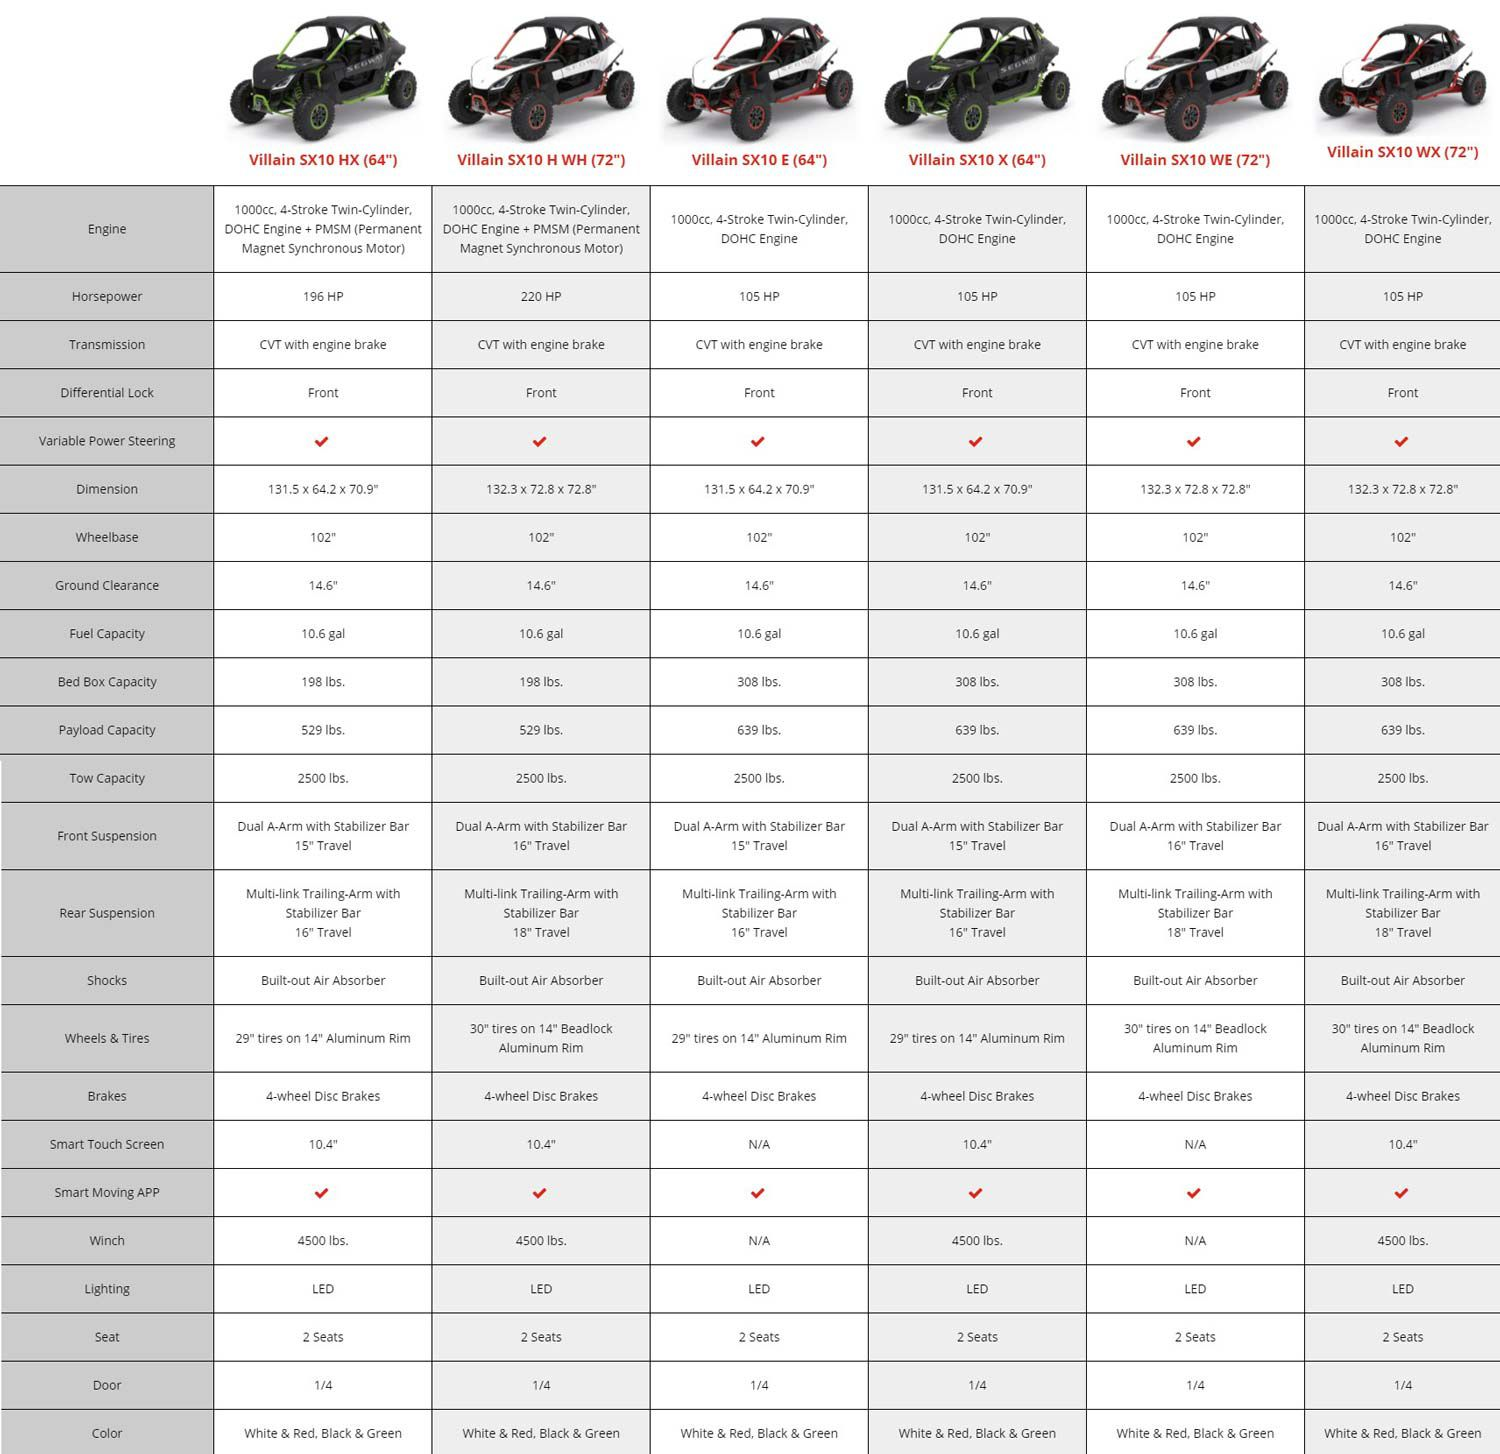 The latest specifications for new Segway Villain models coming to US dealerships.